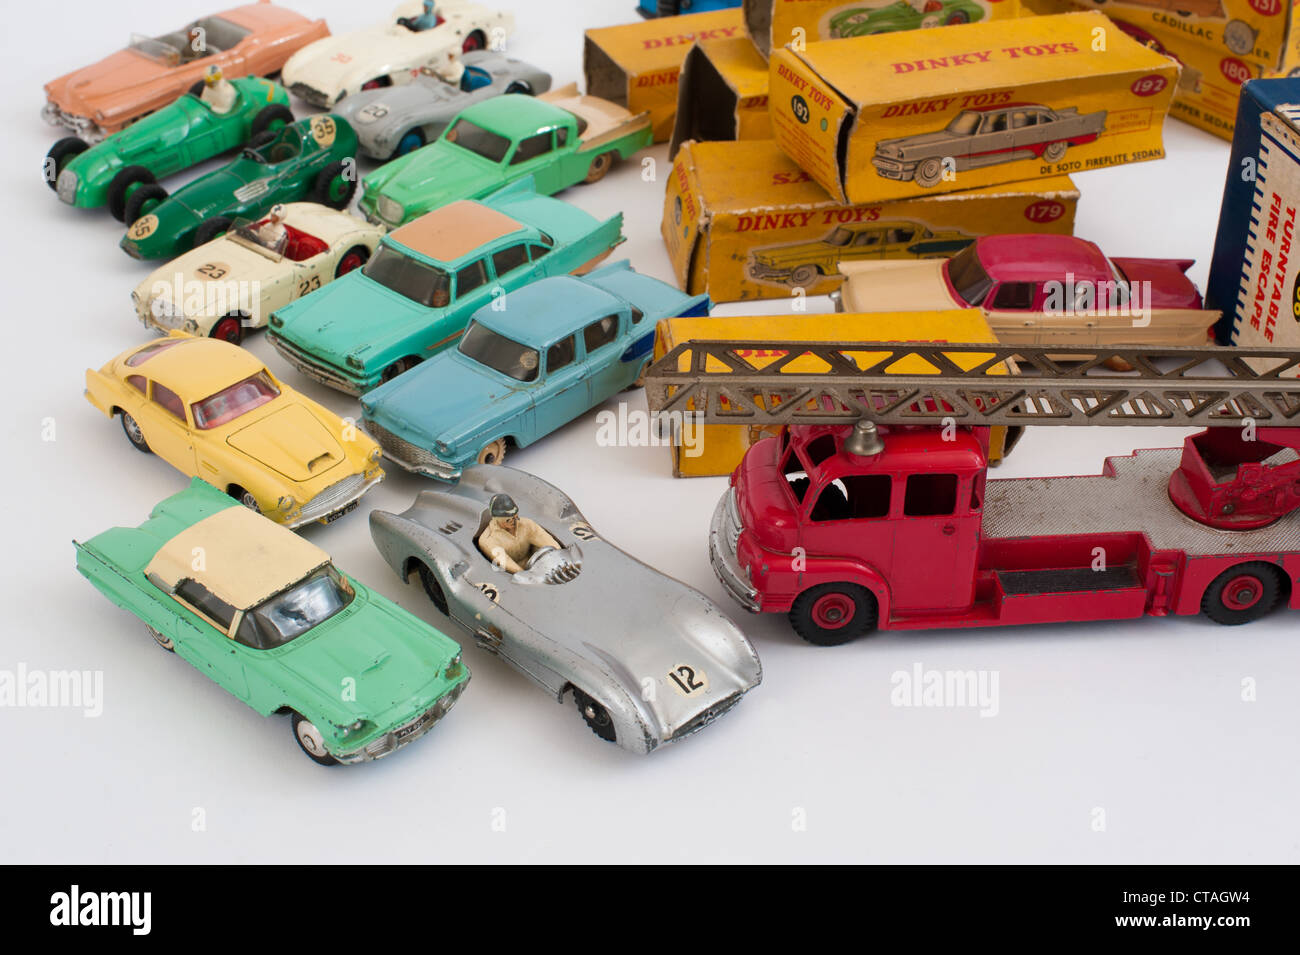 Collection of Dinky toys Stock Photo